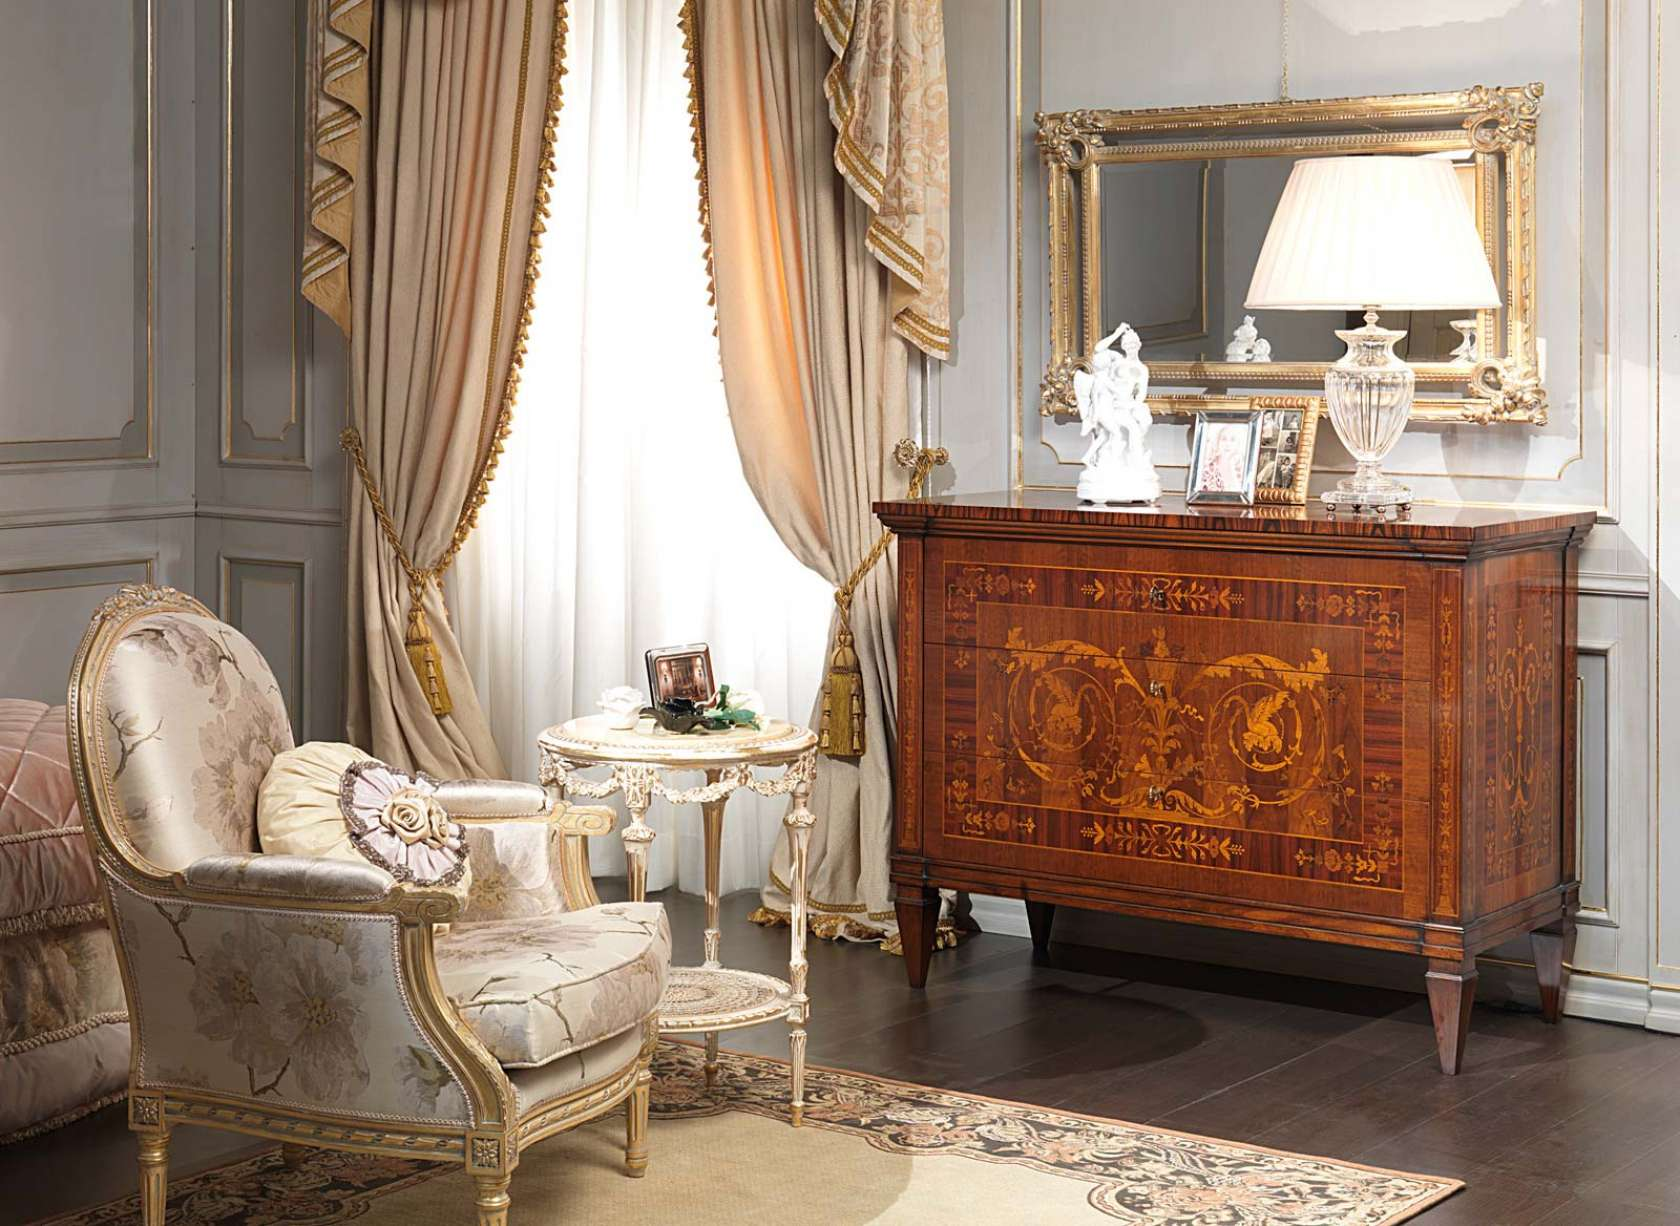 Classic maggiolini bedroom chest of drawers wall mirror armchair vimercati classic furniture - Sedie per camere da letto ...